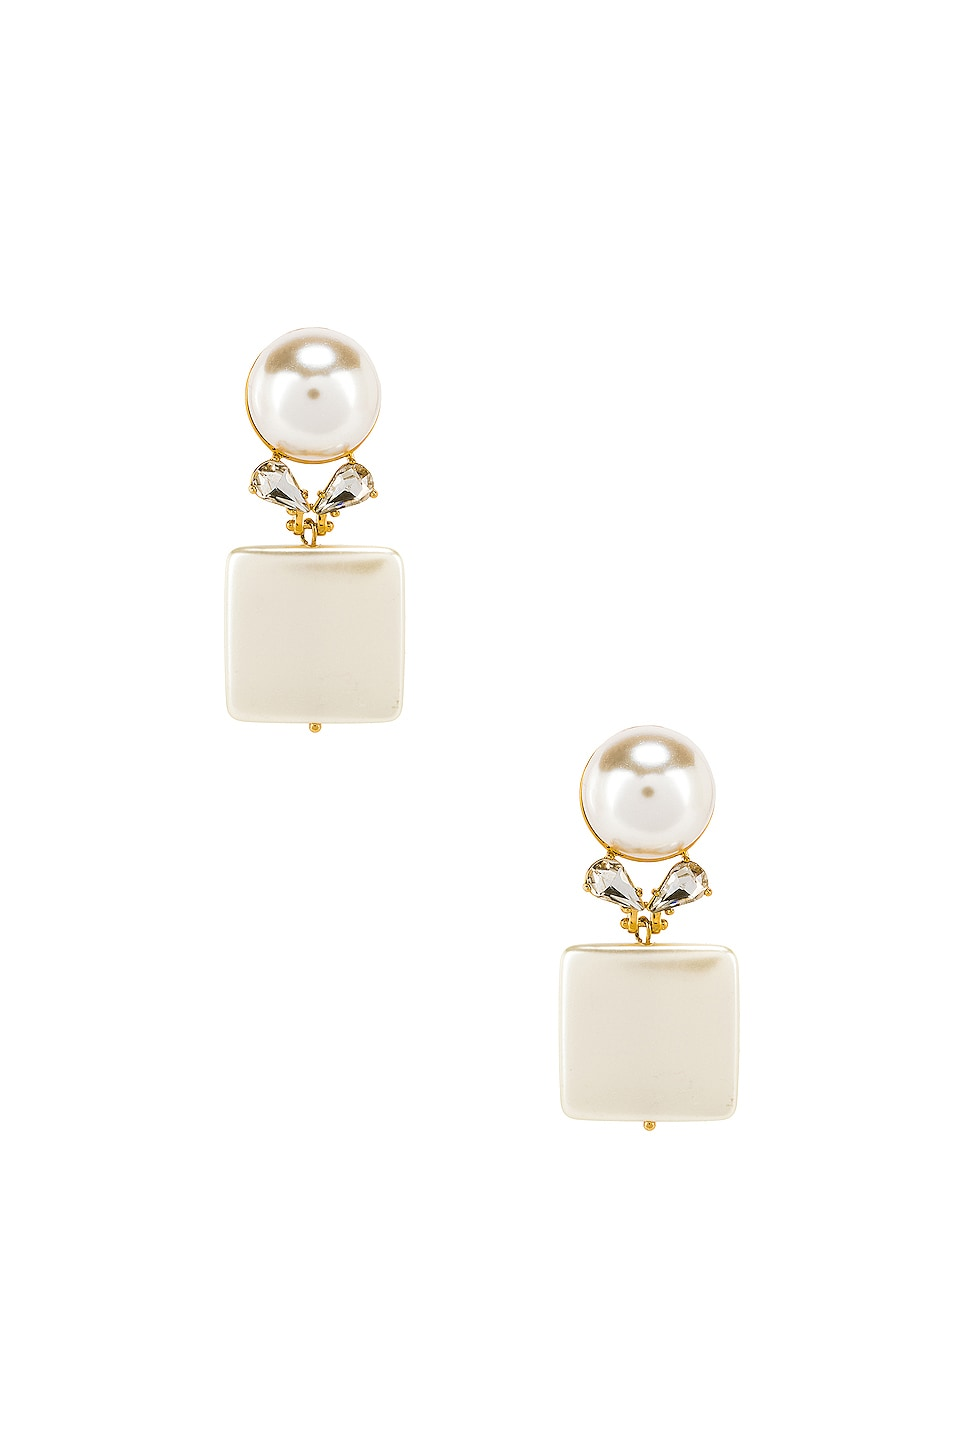 Lele Sadoughi Stone Starlet Earrings in Pearl